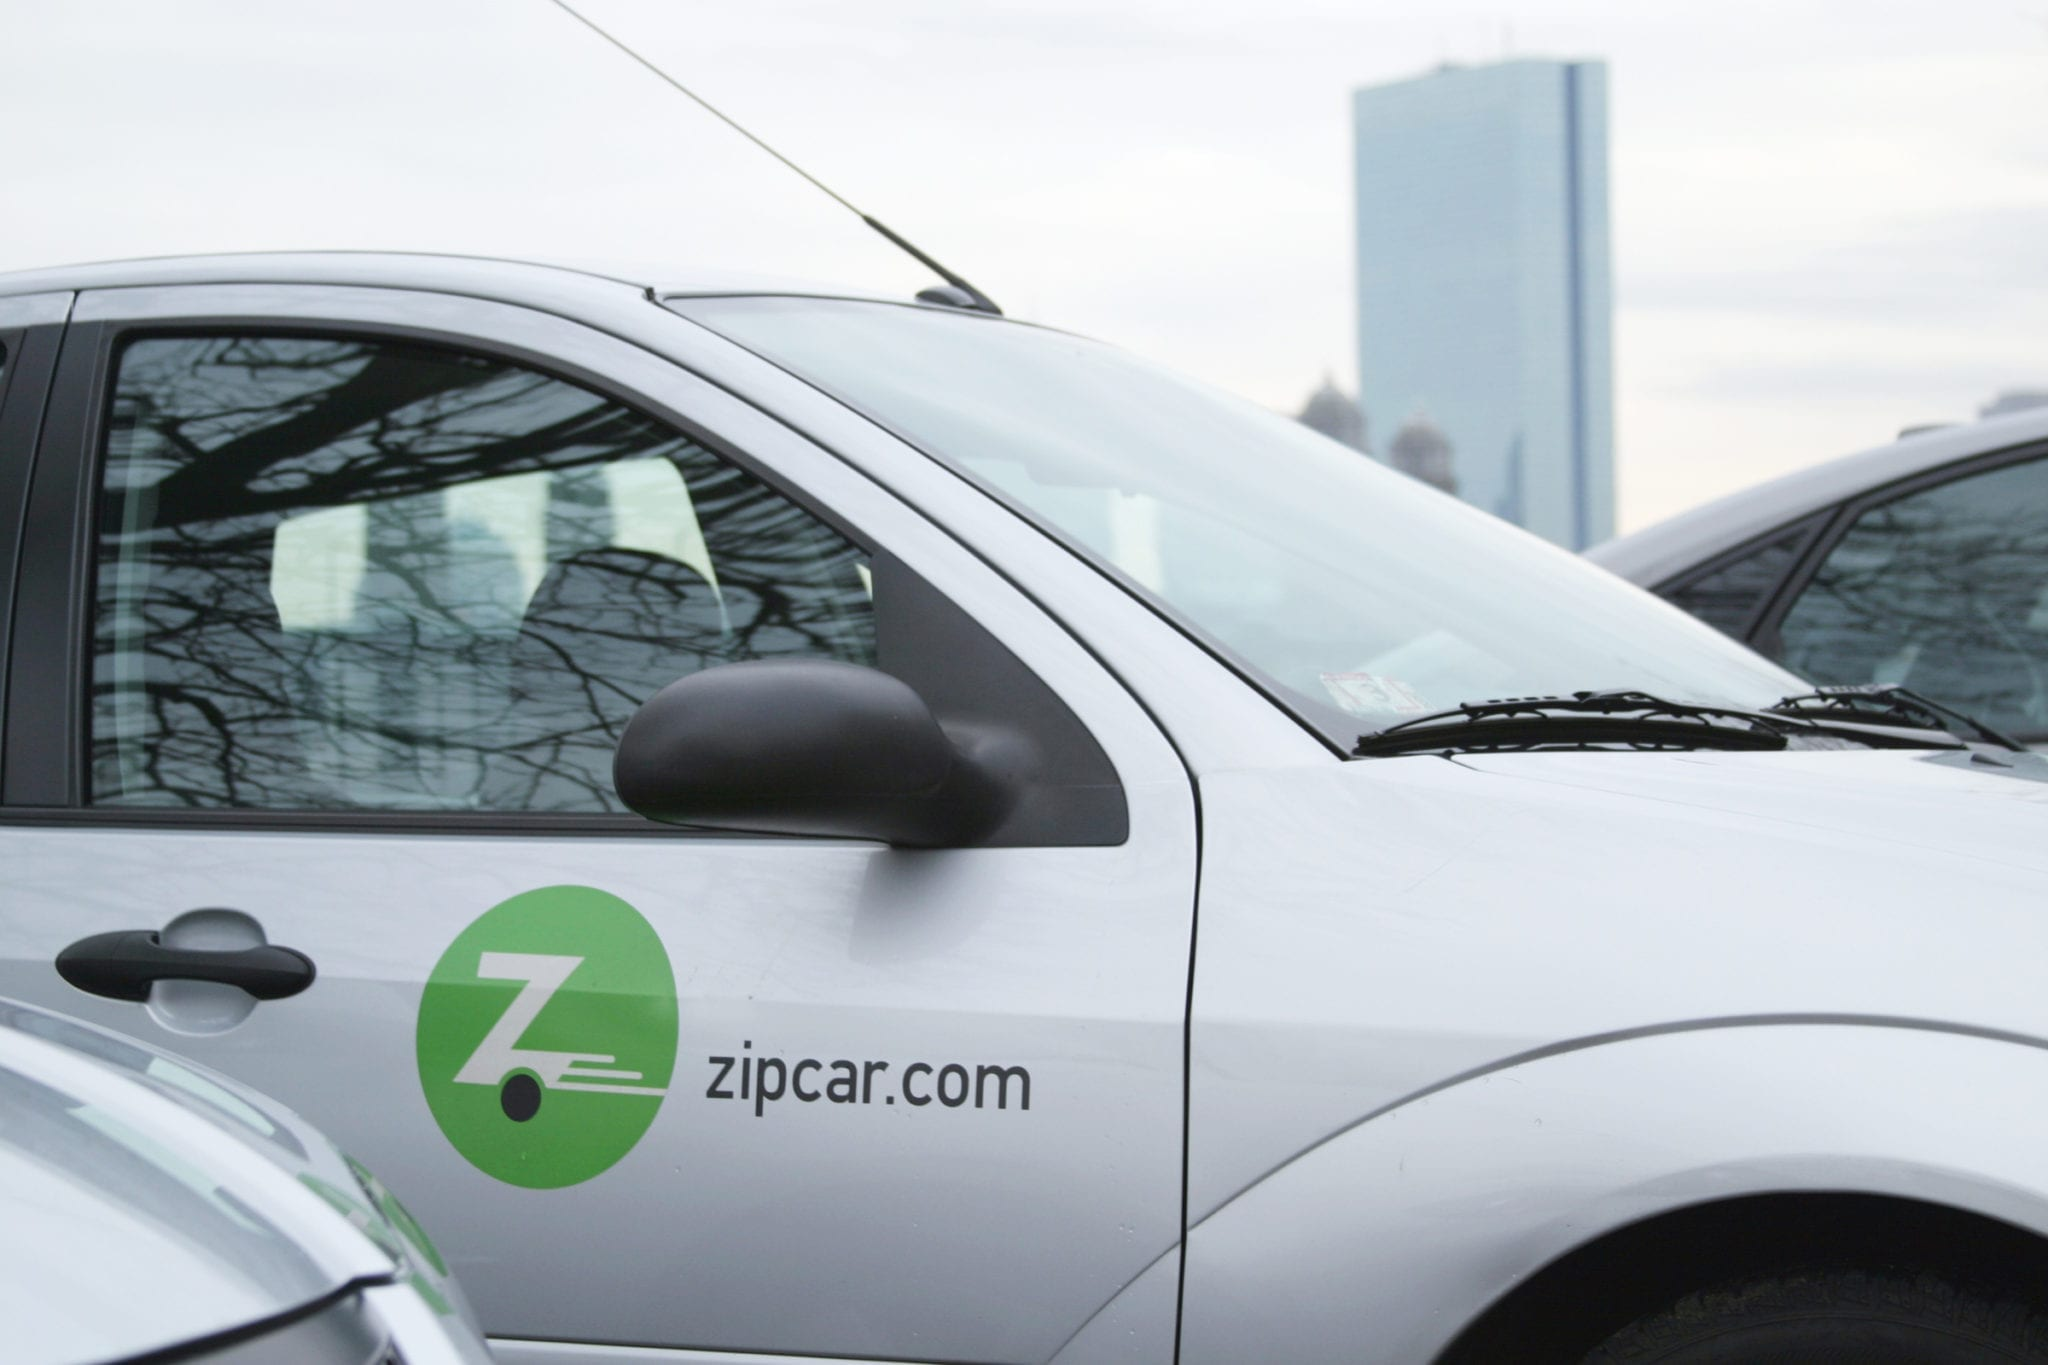 Zipcar: Car sharing for the future - Blast